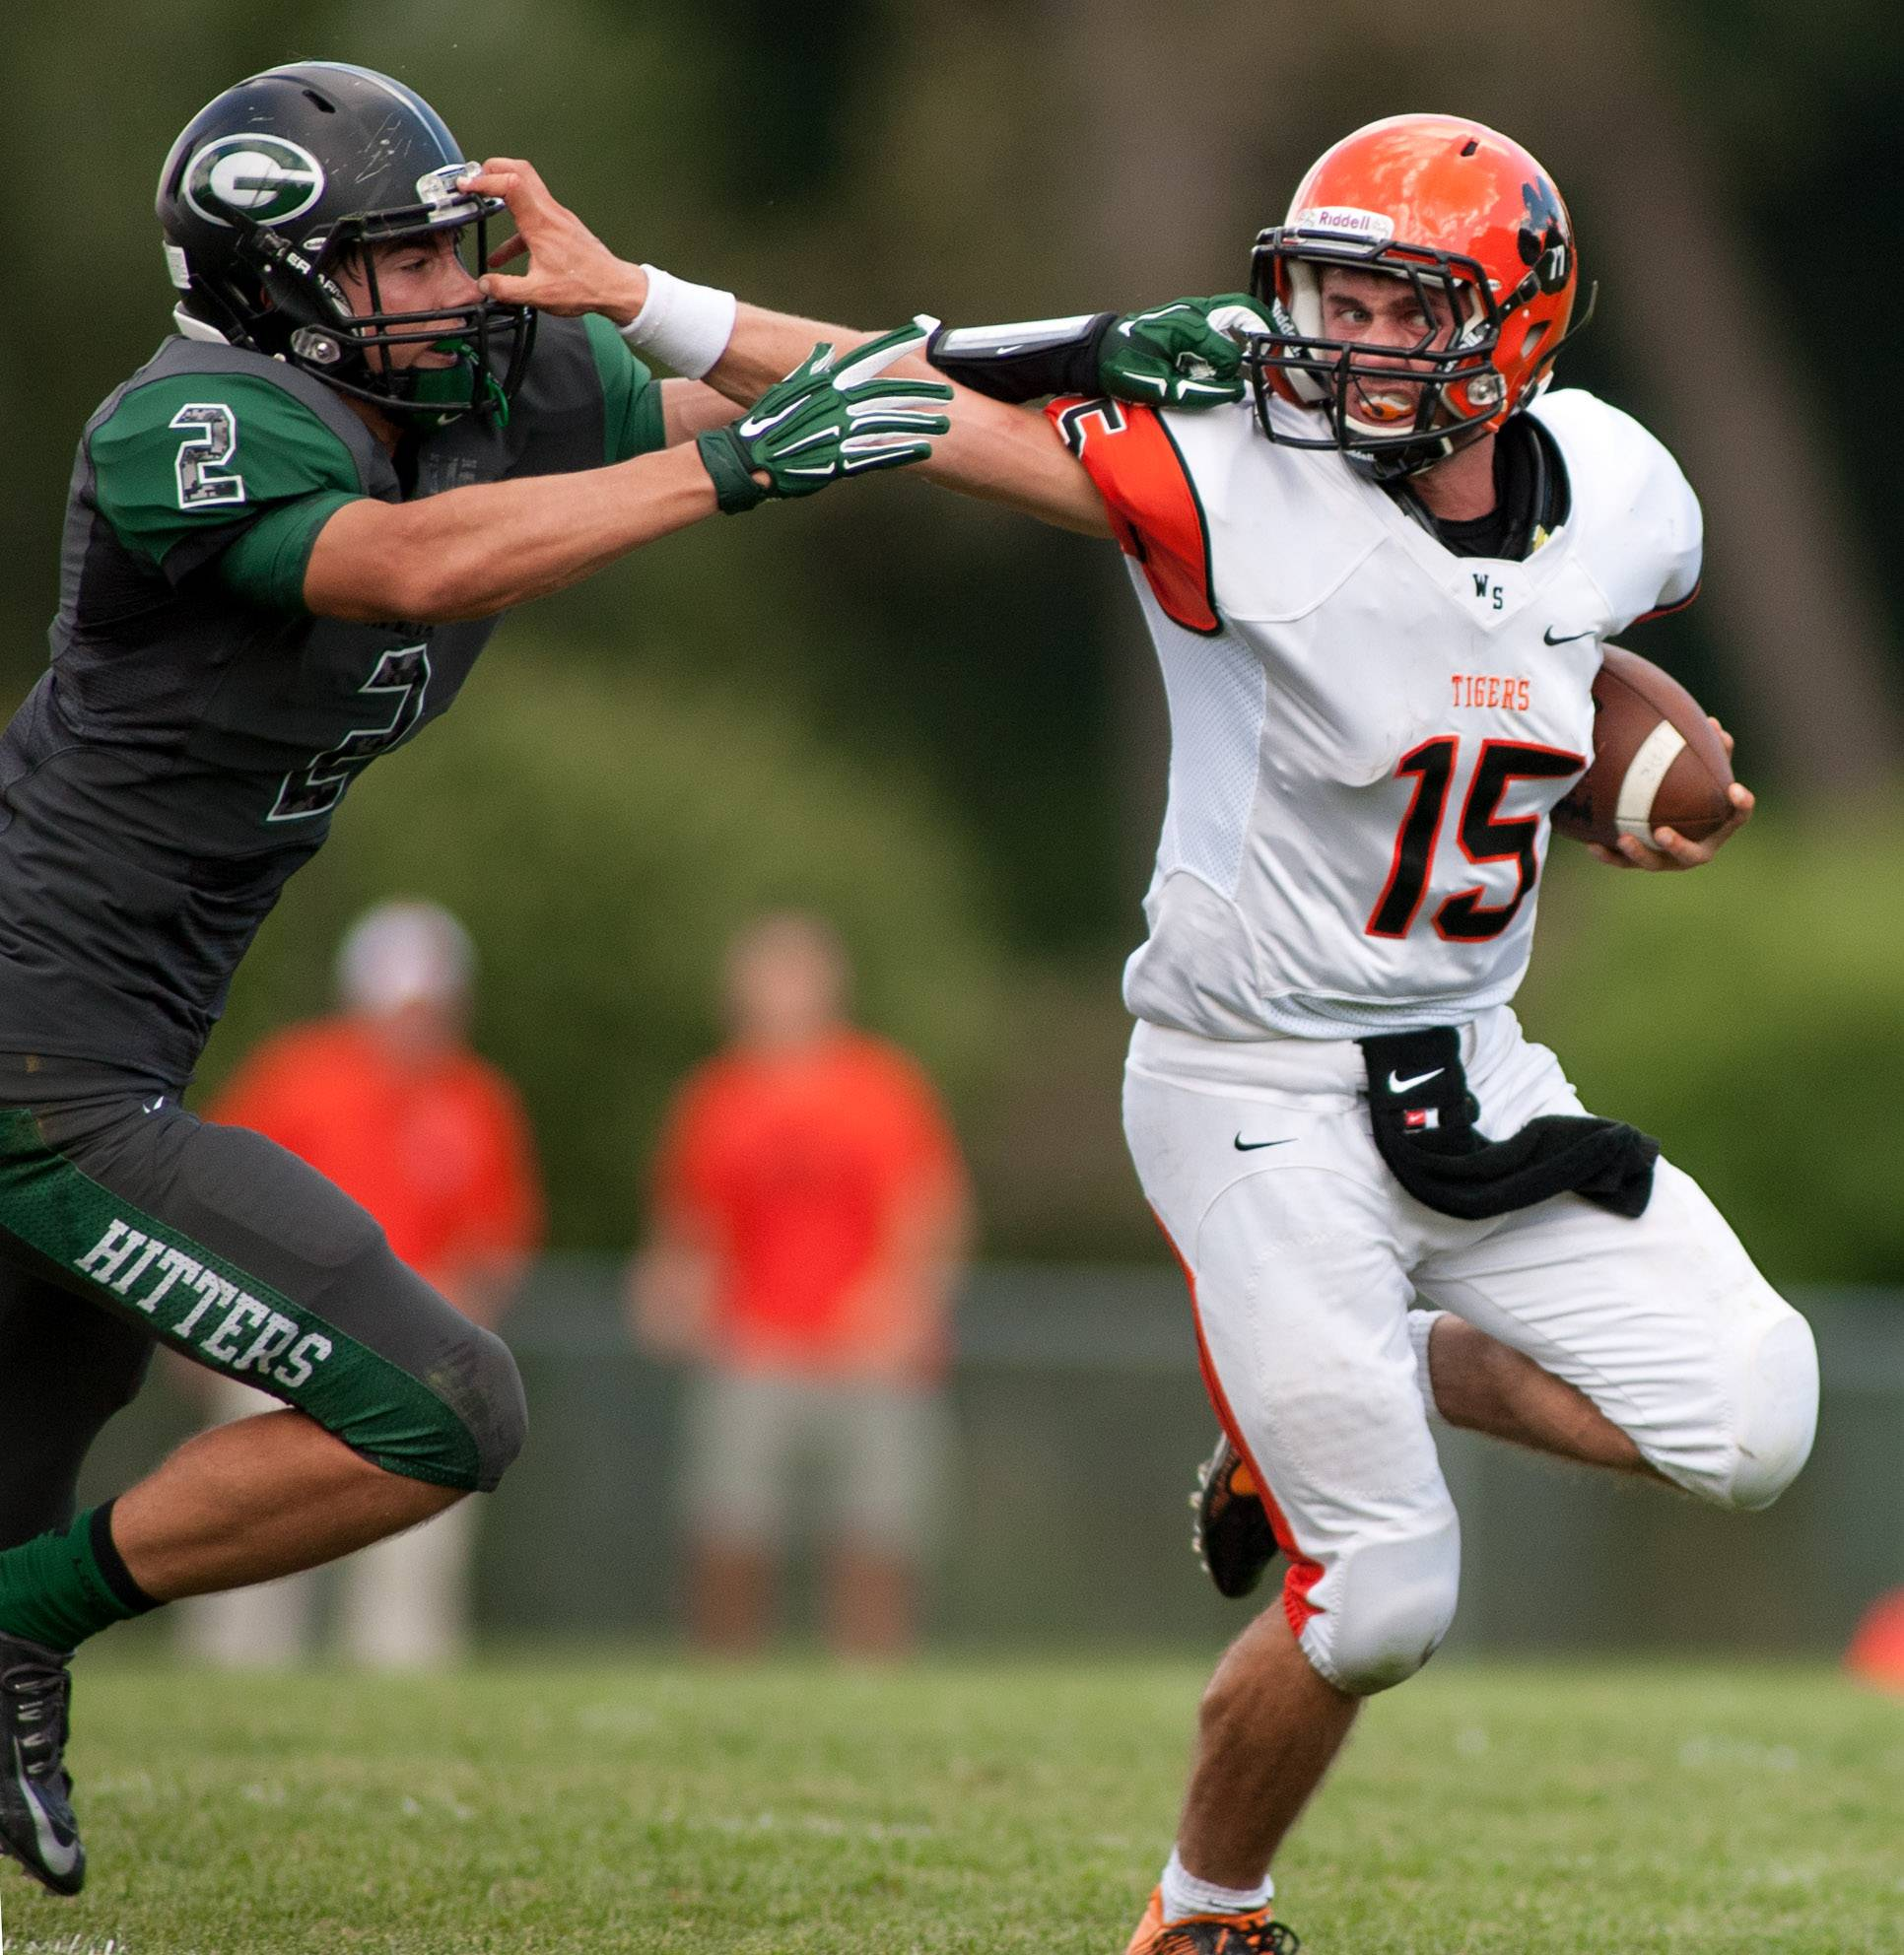 Glenbard West's Ben Marcus, left, Wheaton Warrenville's Josh Prueter, right, tangle during first half action at Duchon Field.